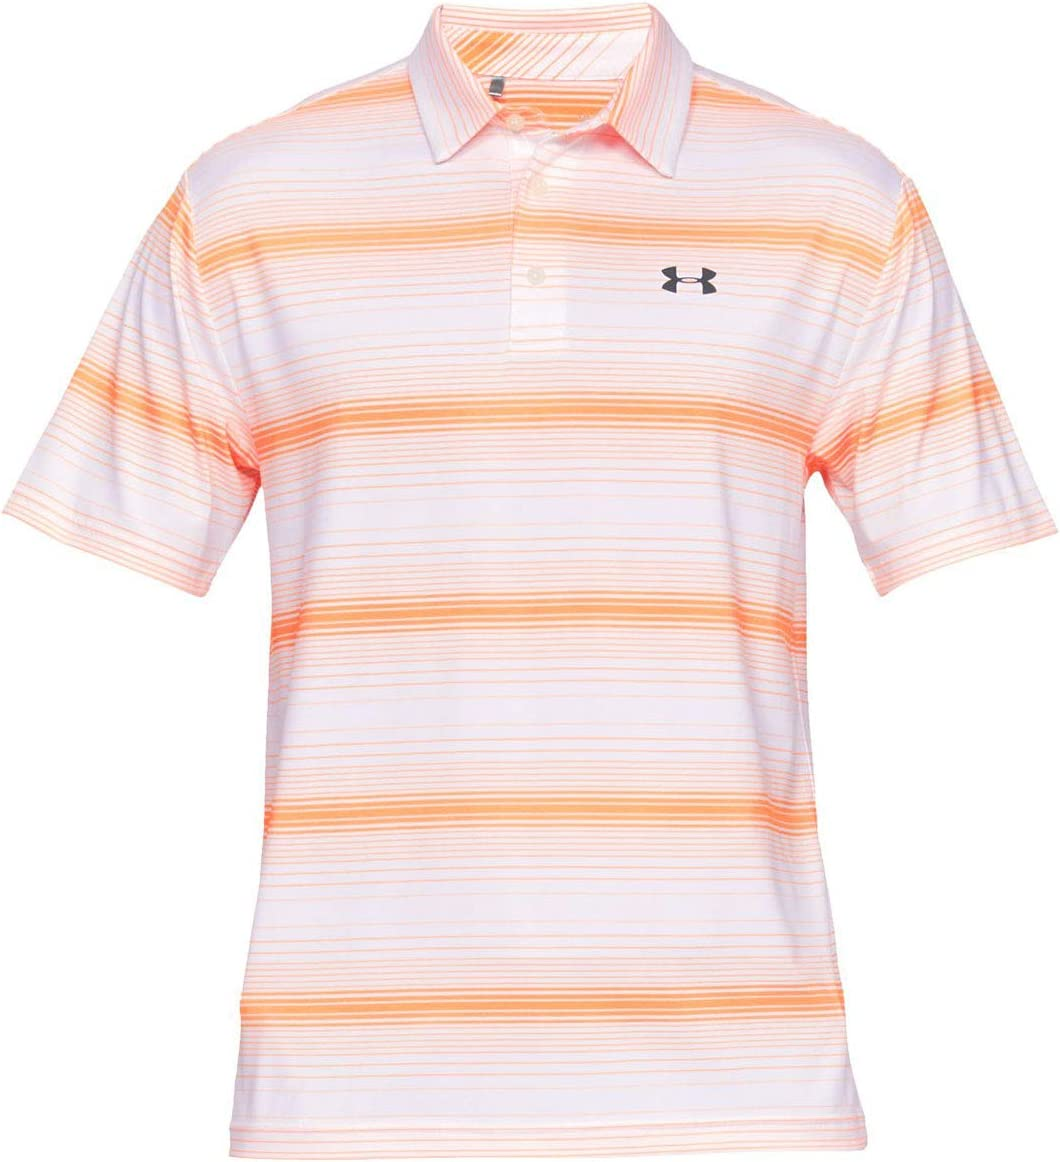 Under Armour Playoff 2.0 Polo T Shirt with Short Sleeves Short Sleeve Polo Shirt with Sun Protection Men